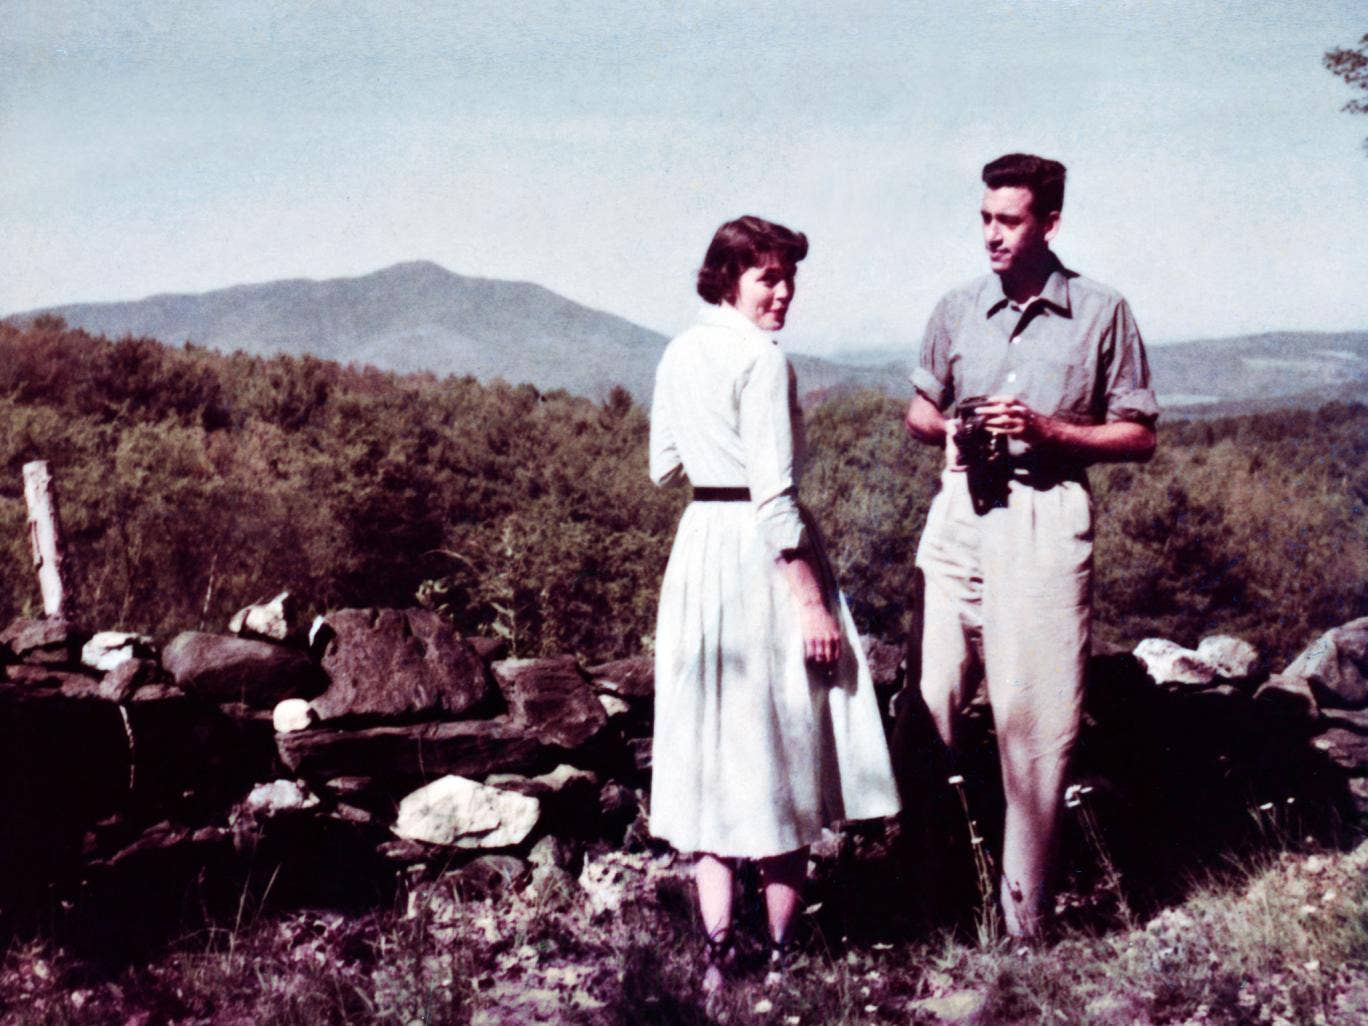 A rare photograph of author JD Salinger, right, with a friend